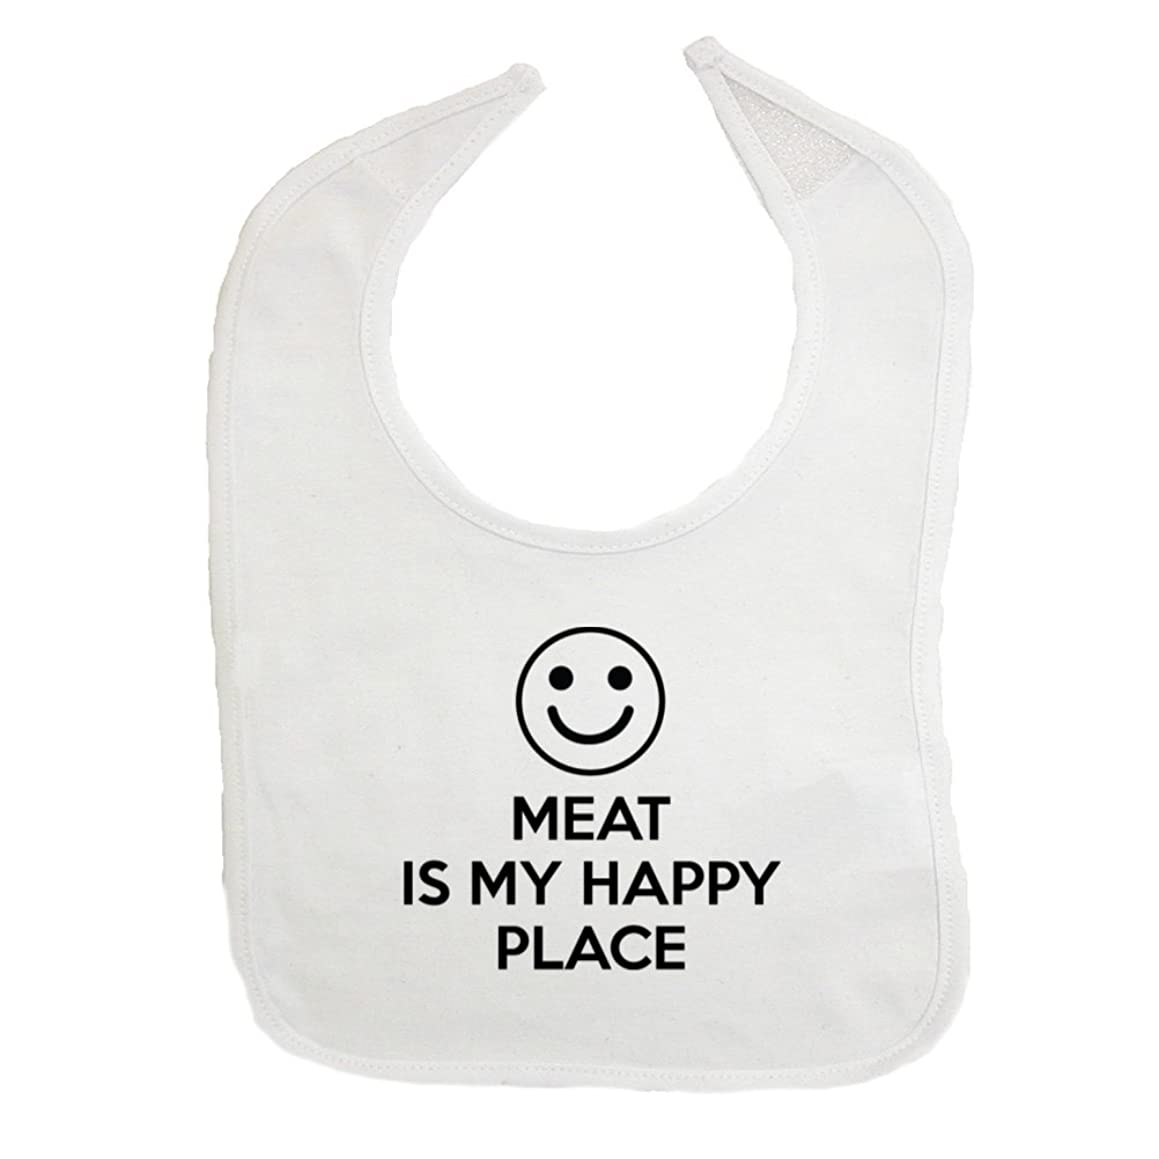 Mashed Clothing Meat Is My Happy Place Cotton Baby Bib